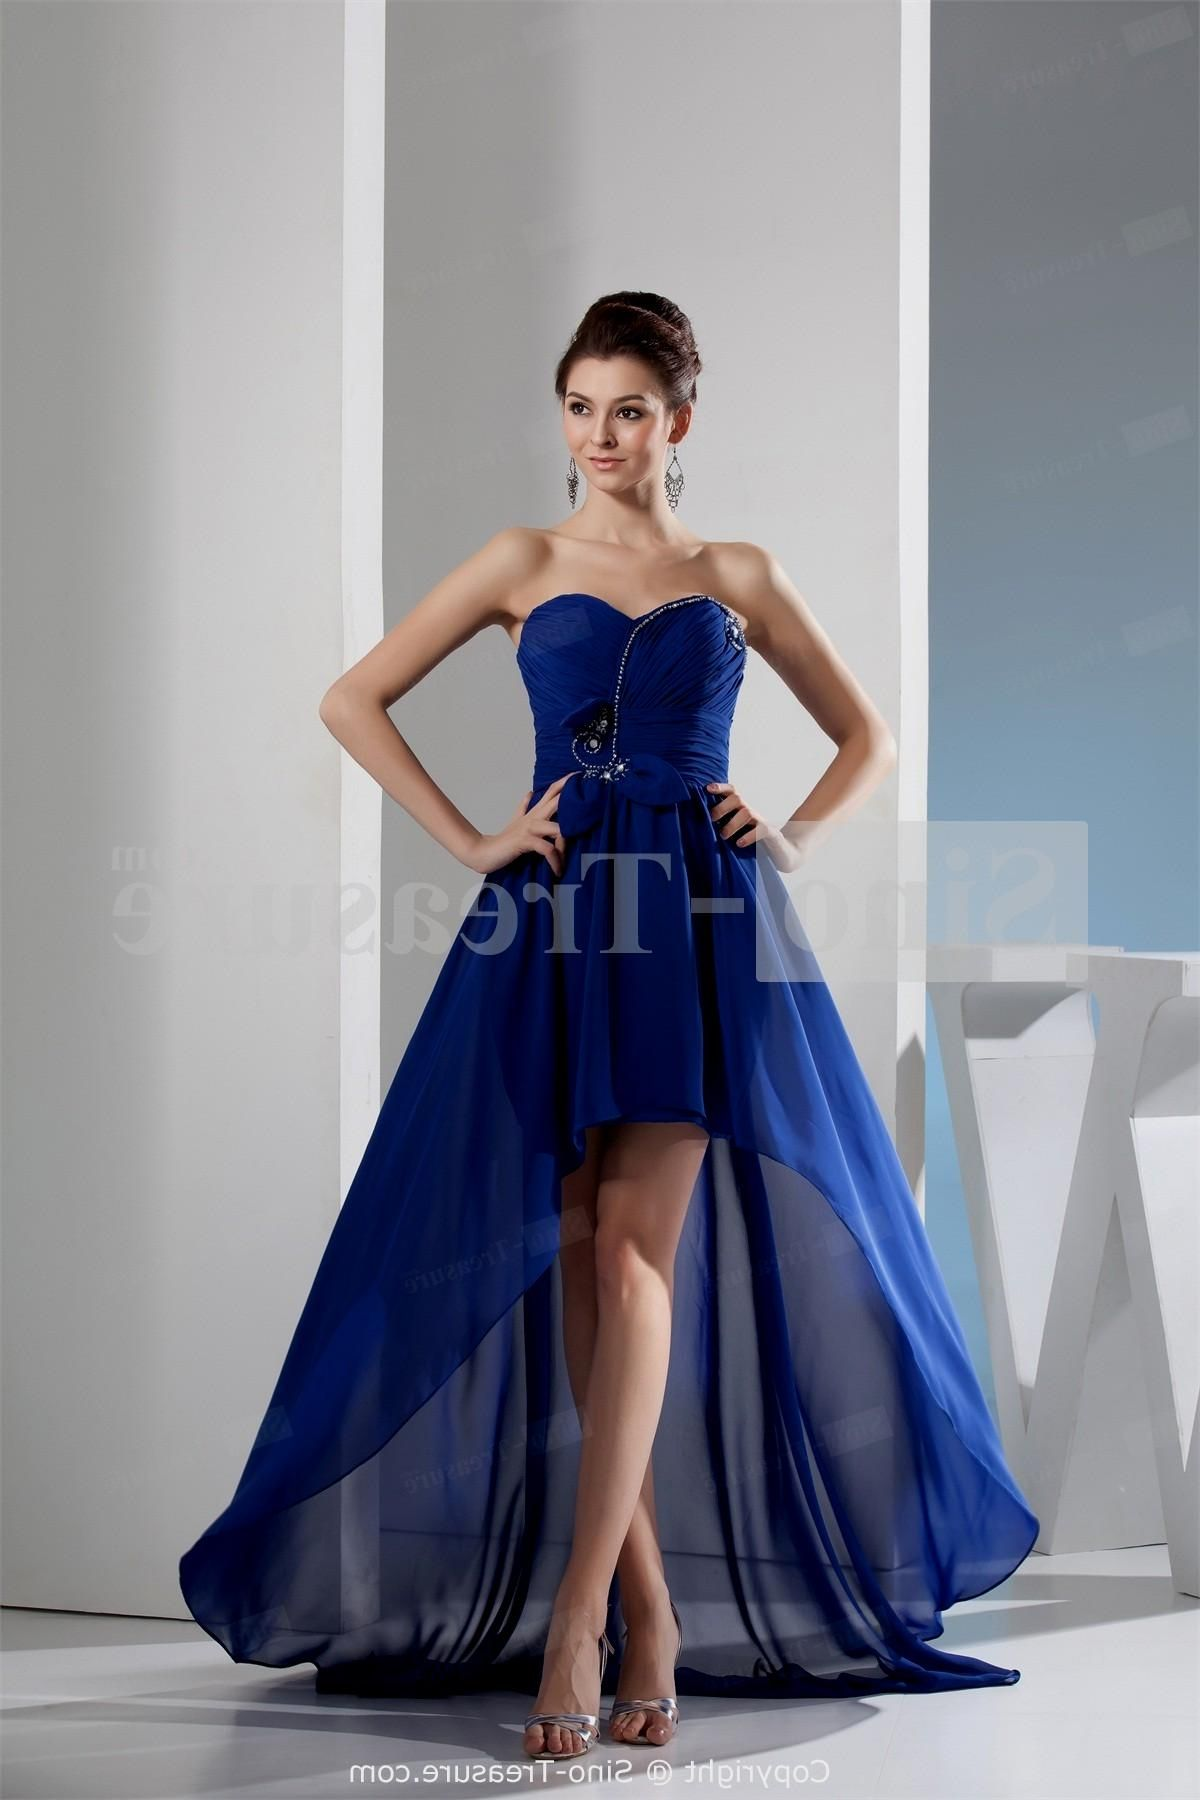 Mature bride wedding dresses  Blue Cocktail Dresses for Wedding  Wedding Dresses for the Mature